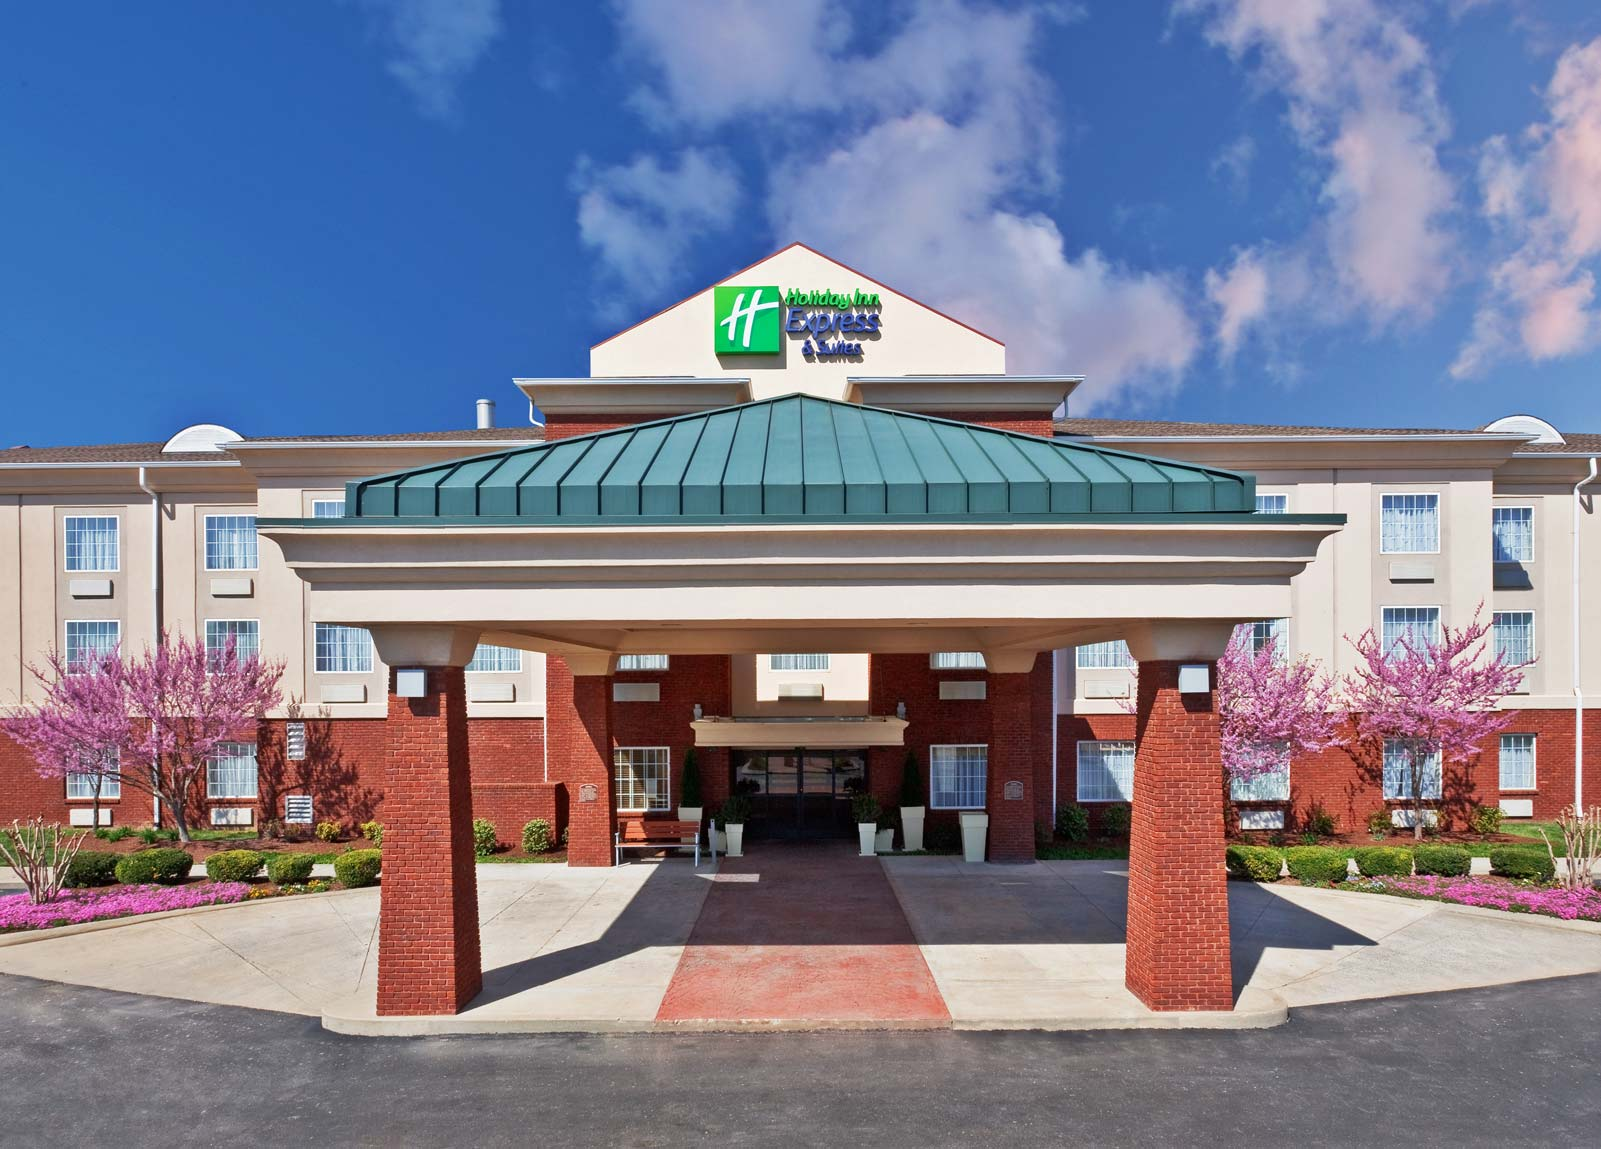 Bonnaroo Music Festival Hotels